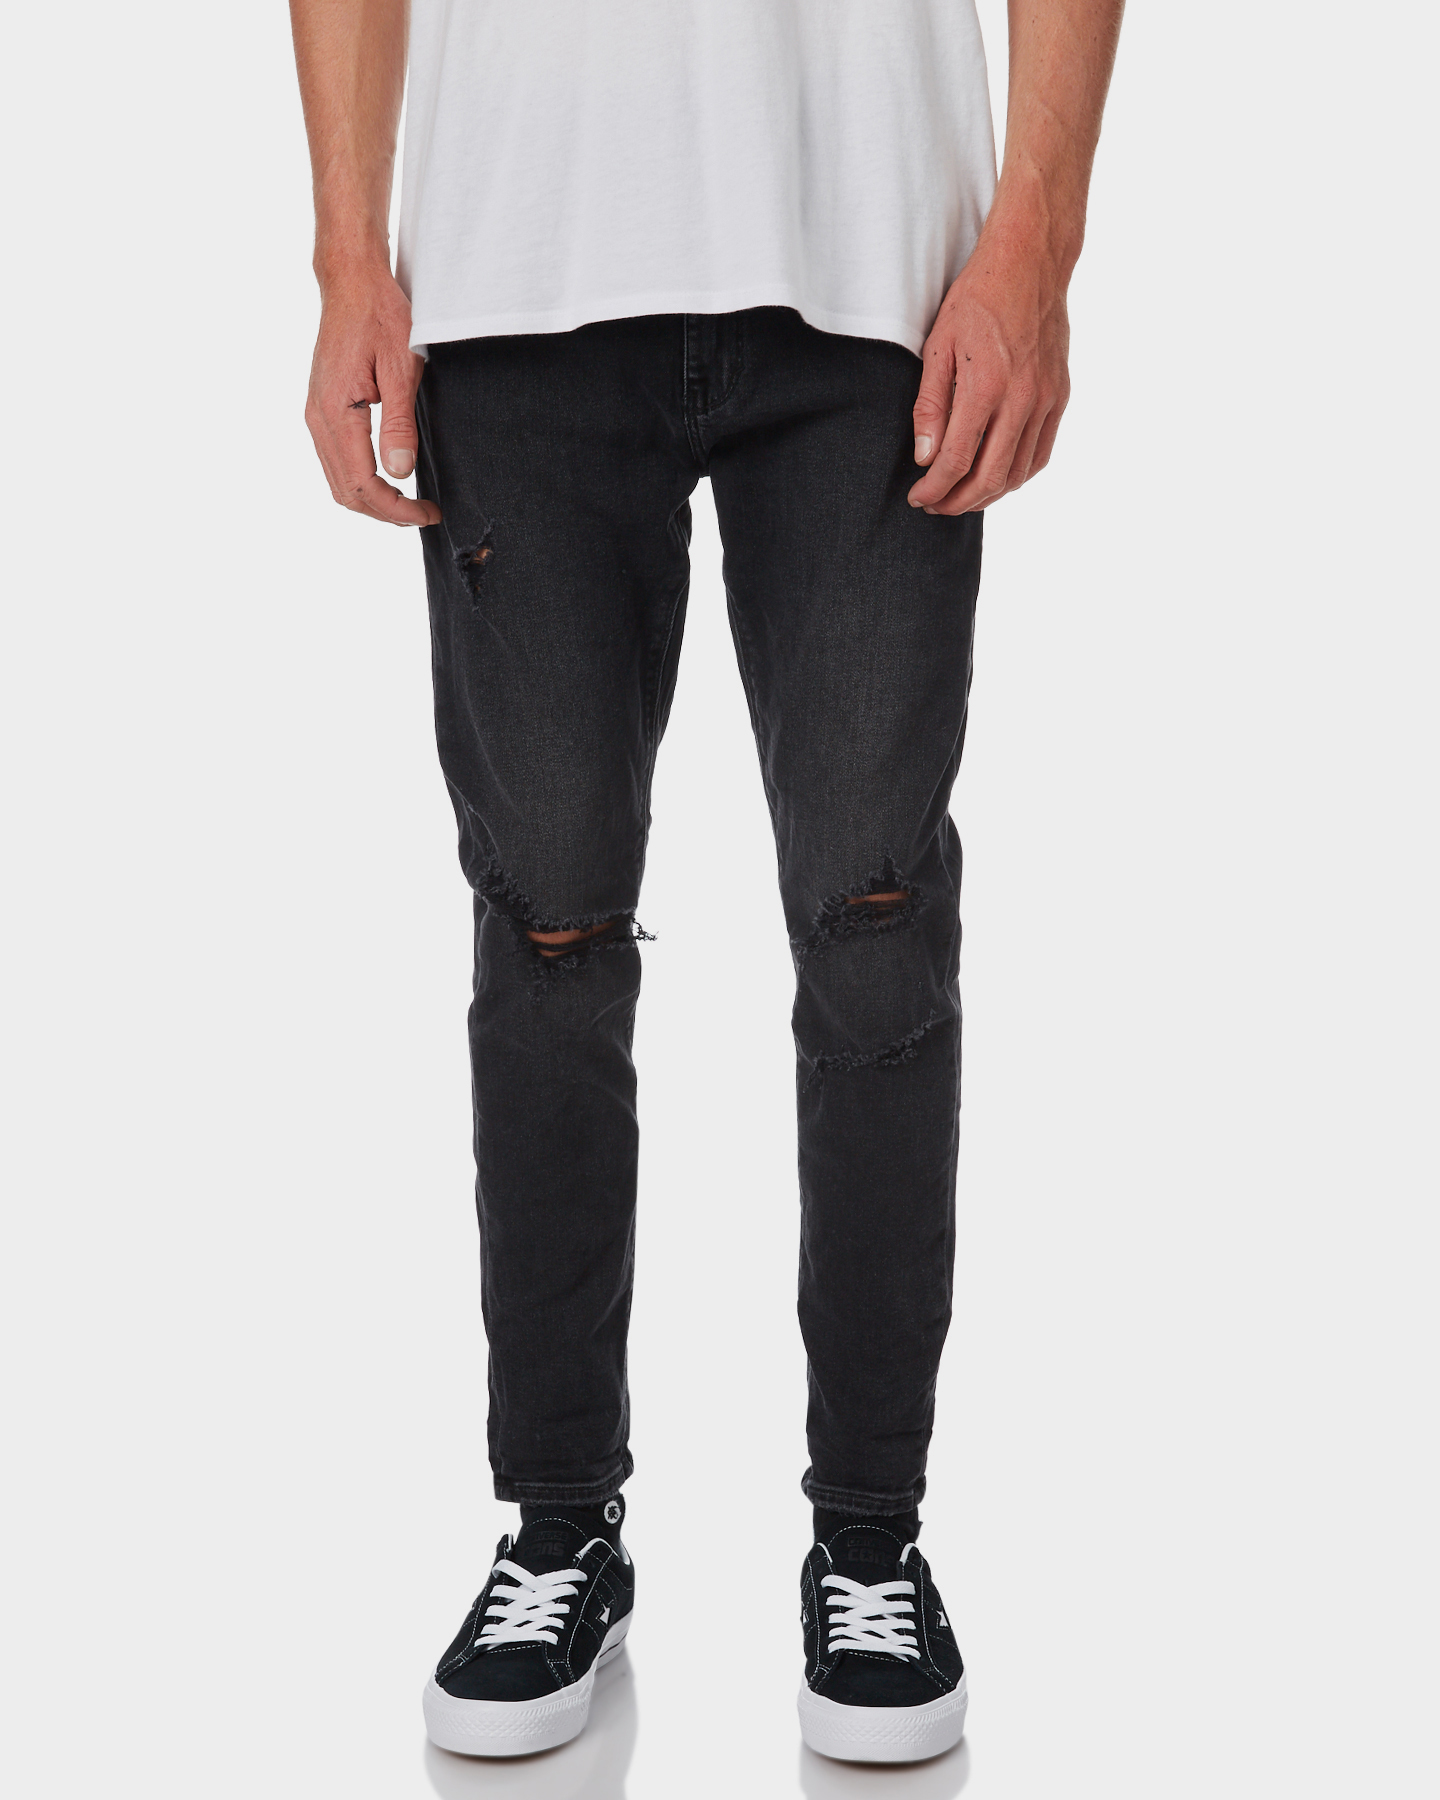 Image of A.Brand A Dropped Skinny Turn Up Mens Jean Crushed Gravel Crushed Gravel